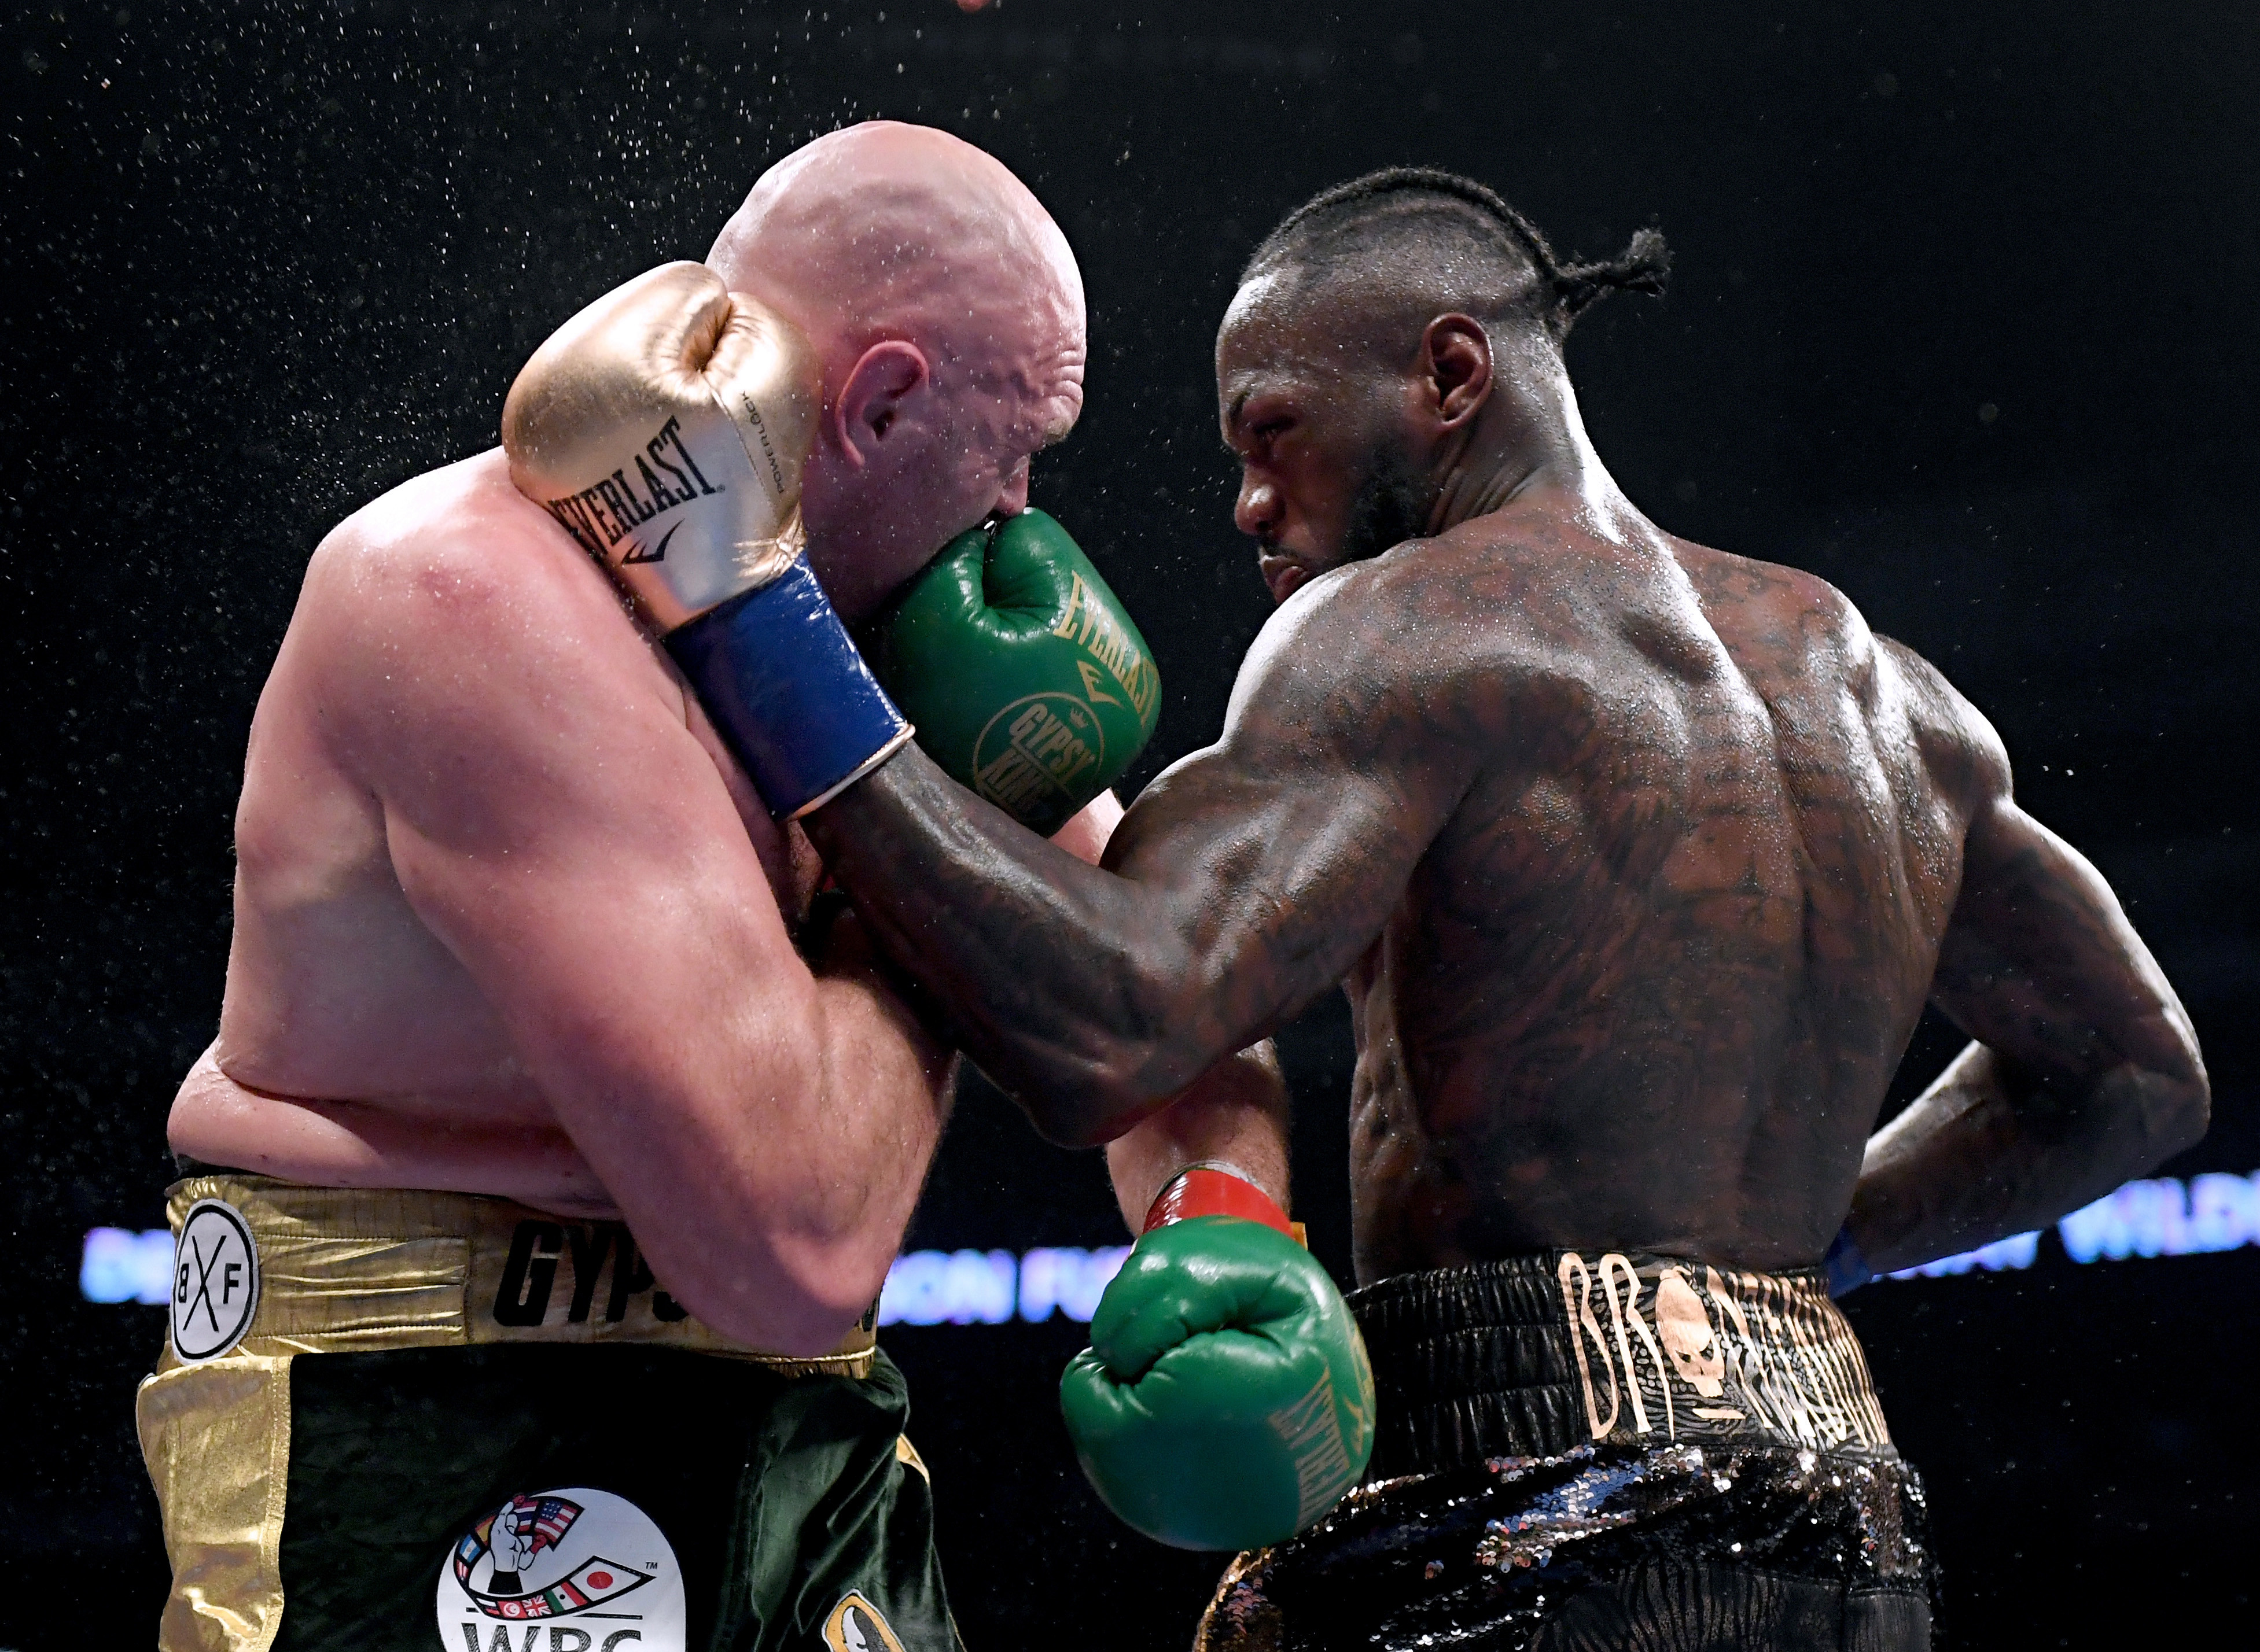 Tyson Fury and Deontay Wilder are set to clash in February 2020